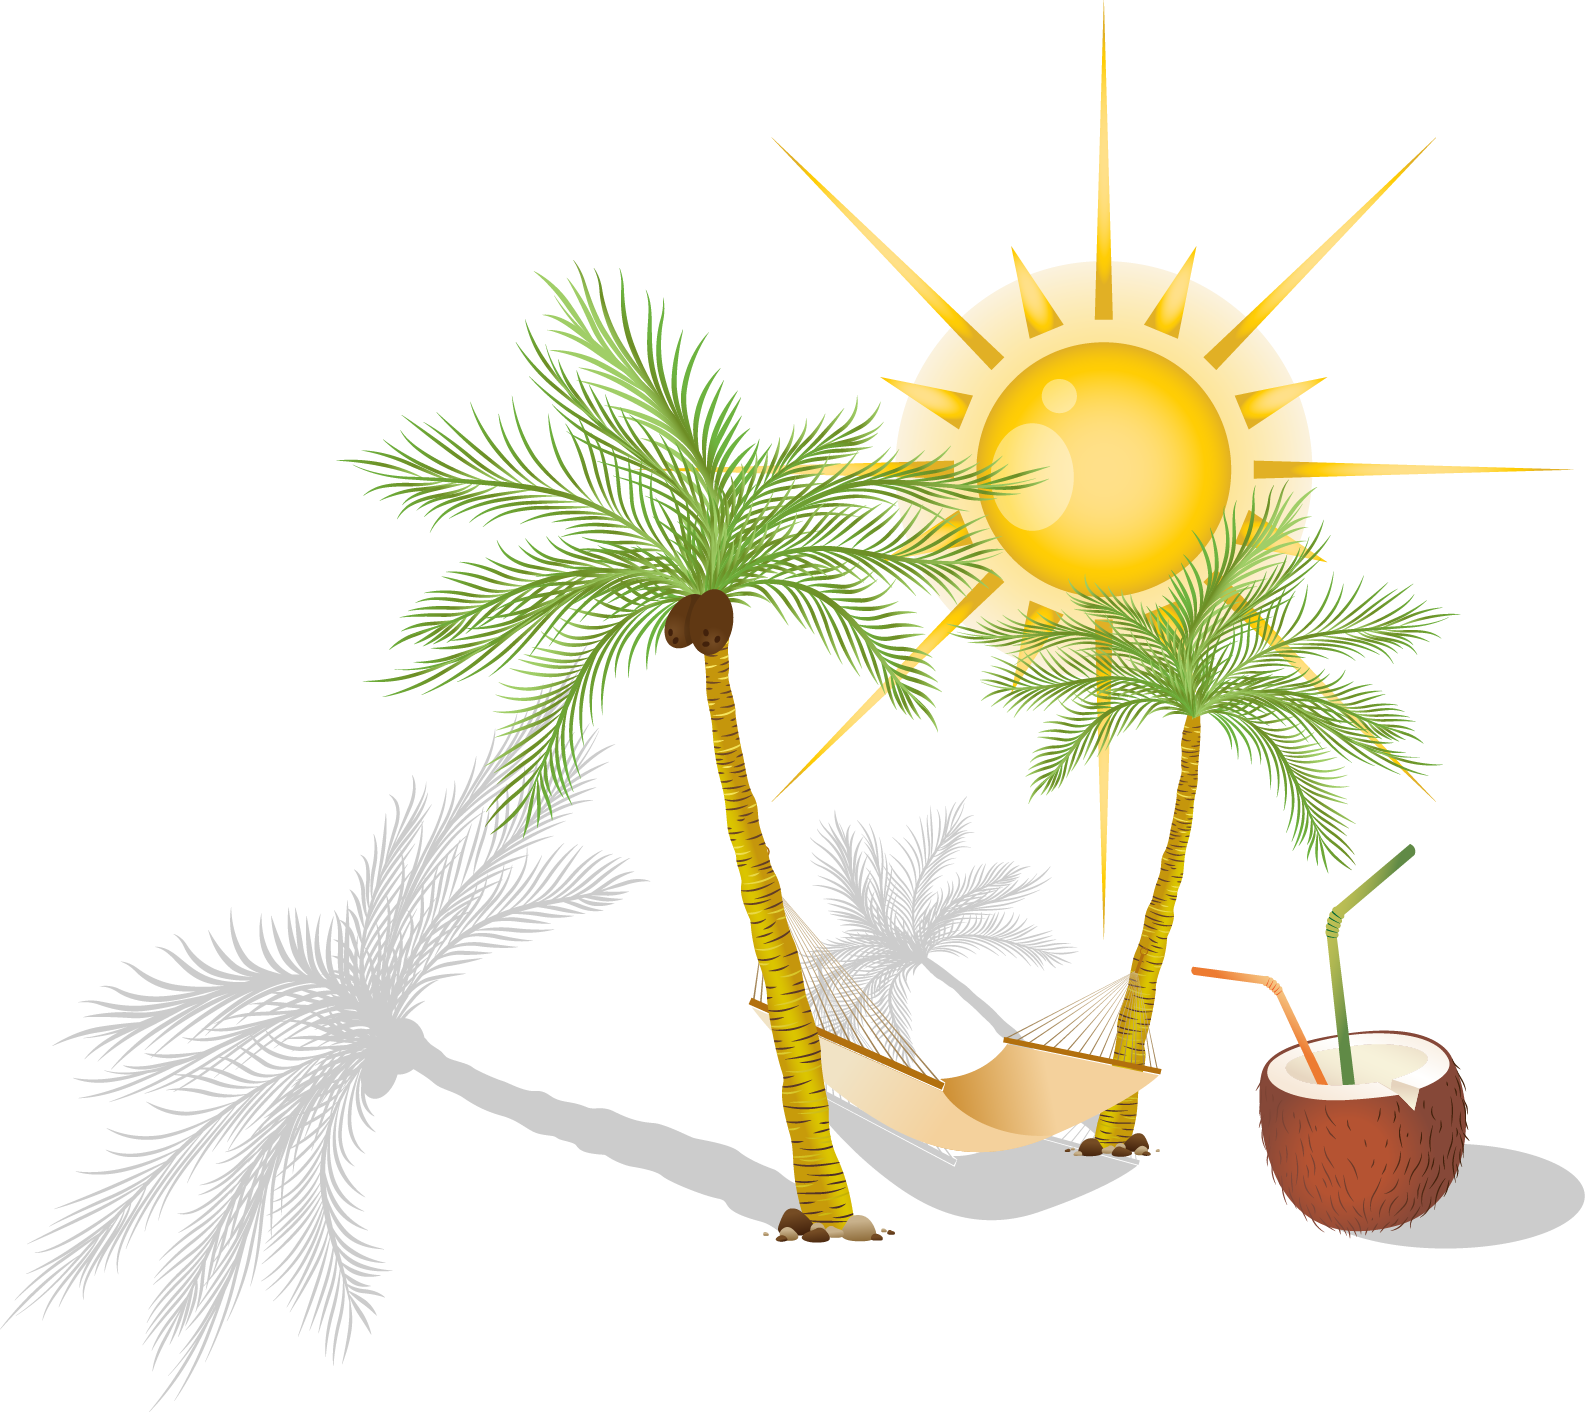 Hammock and trees clipart vector freeuse download HD Hammock Arecaceae Clip Art - Hammock Palm Trees Clipart Png ... vector freeuse download